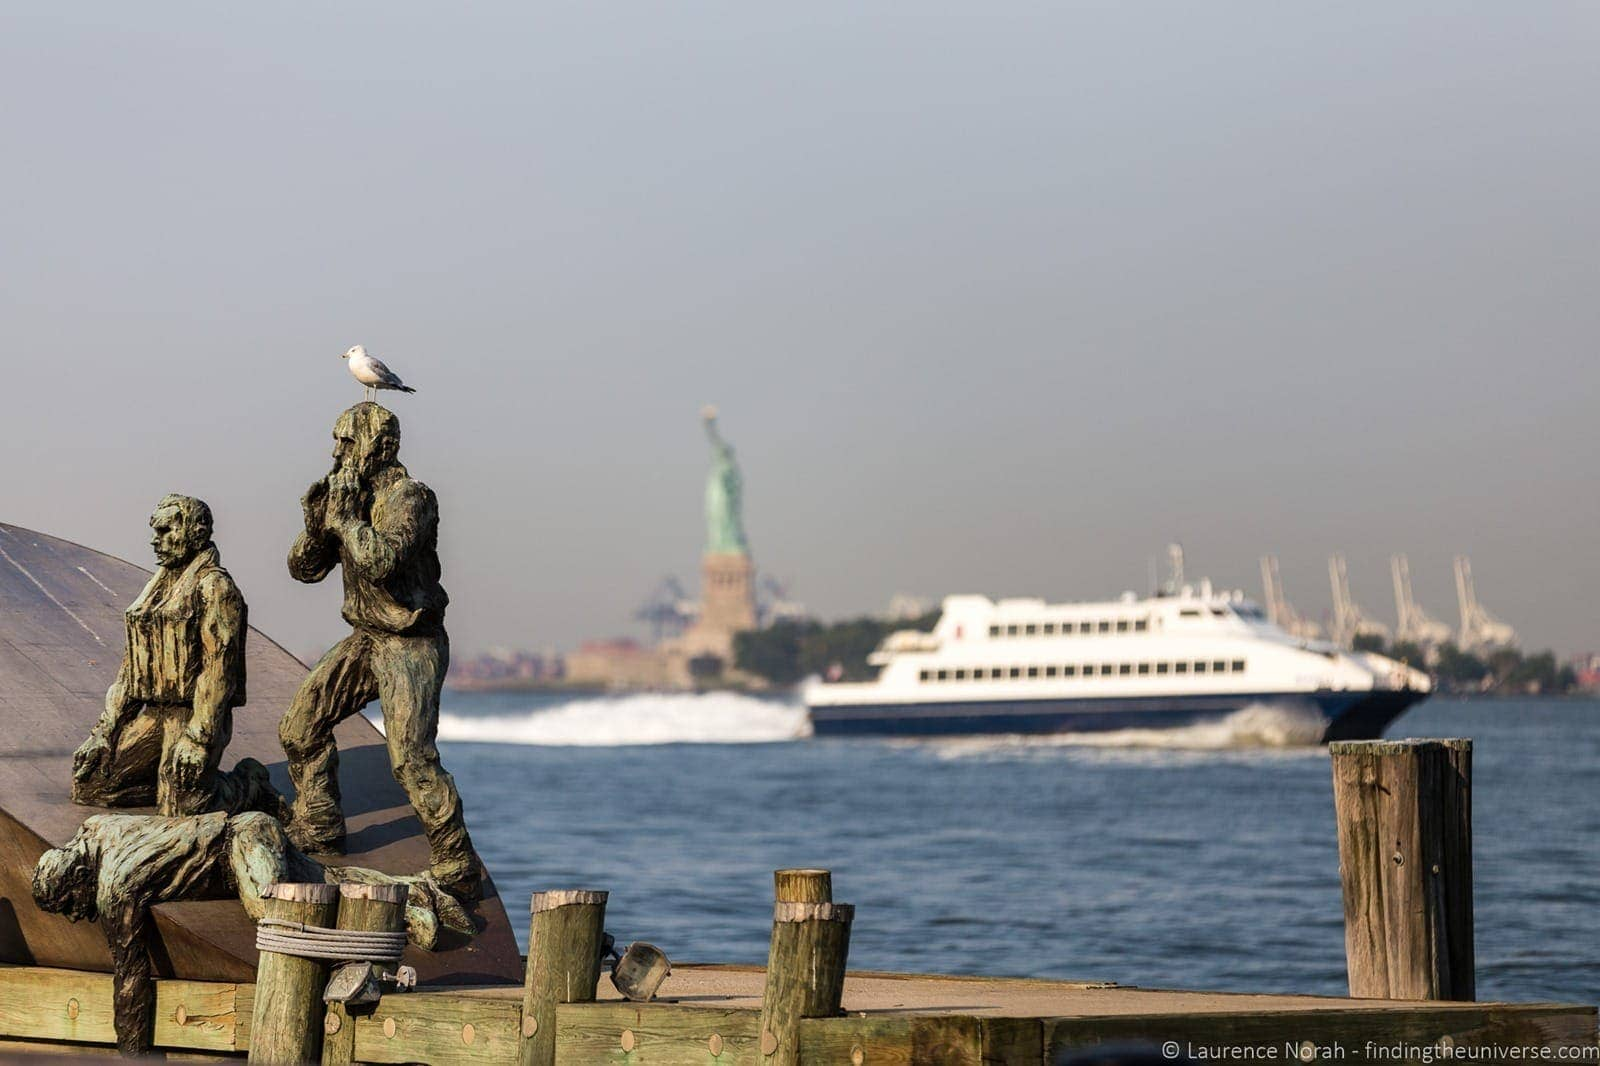 Boat trip to Statue of Liberty Walks of New York walking tour